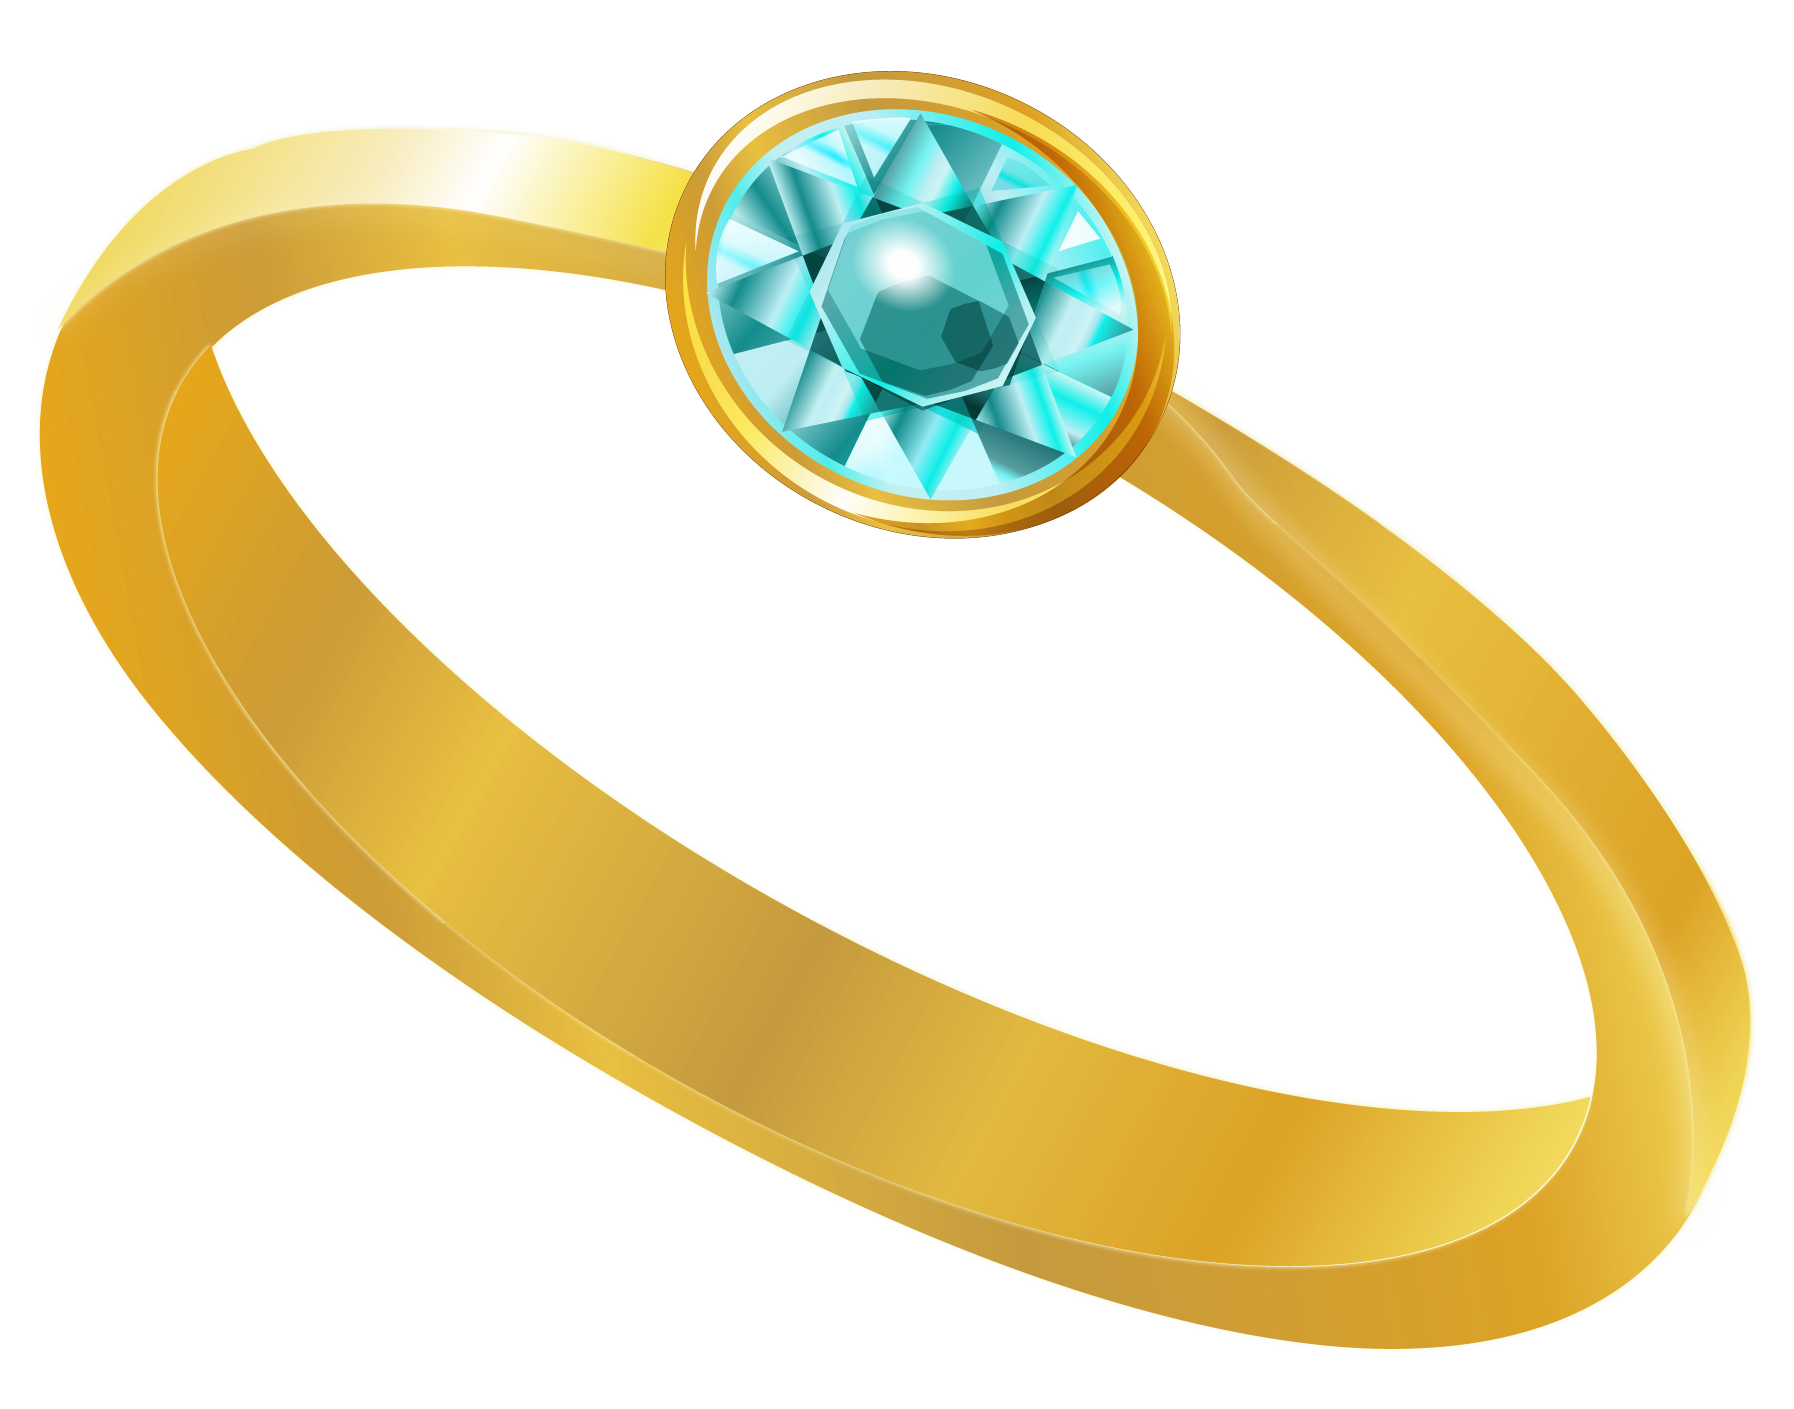 Gold Ring With Blue Diamond